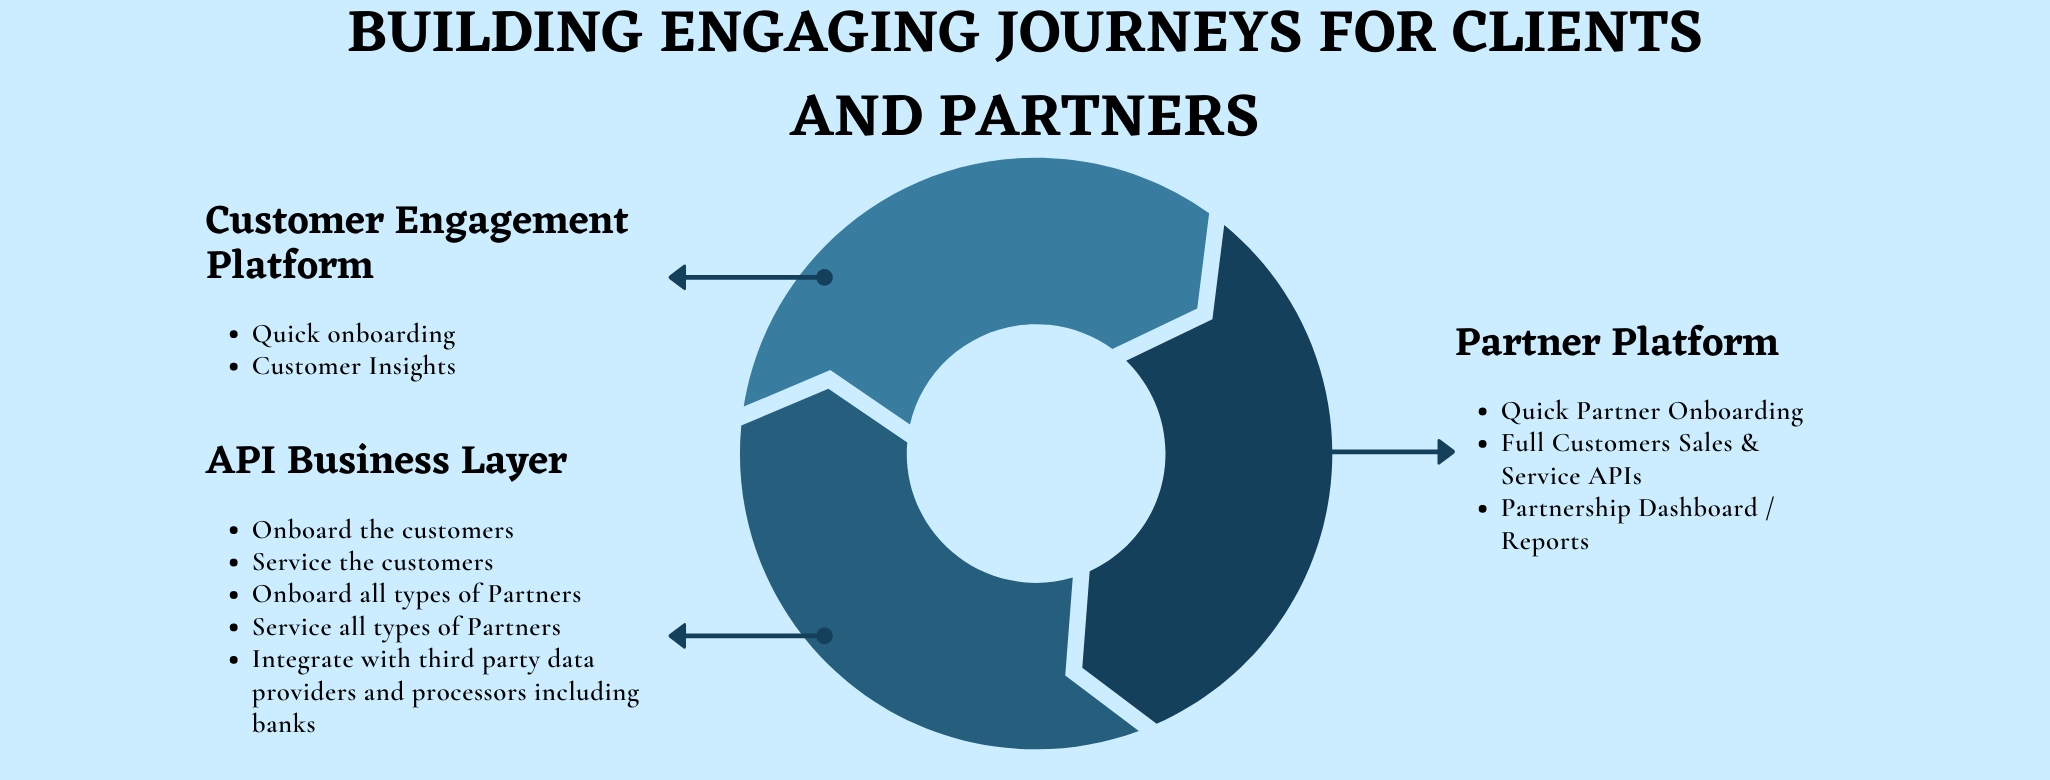 Buildung engaging lending journeys for clients and partners